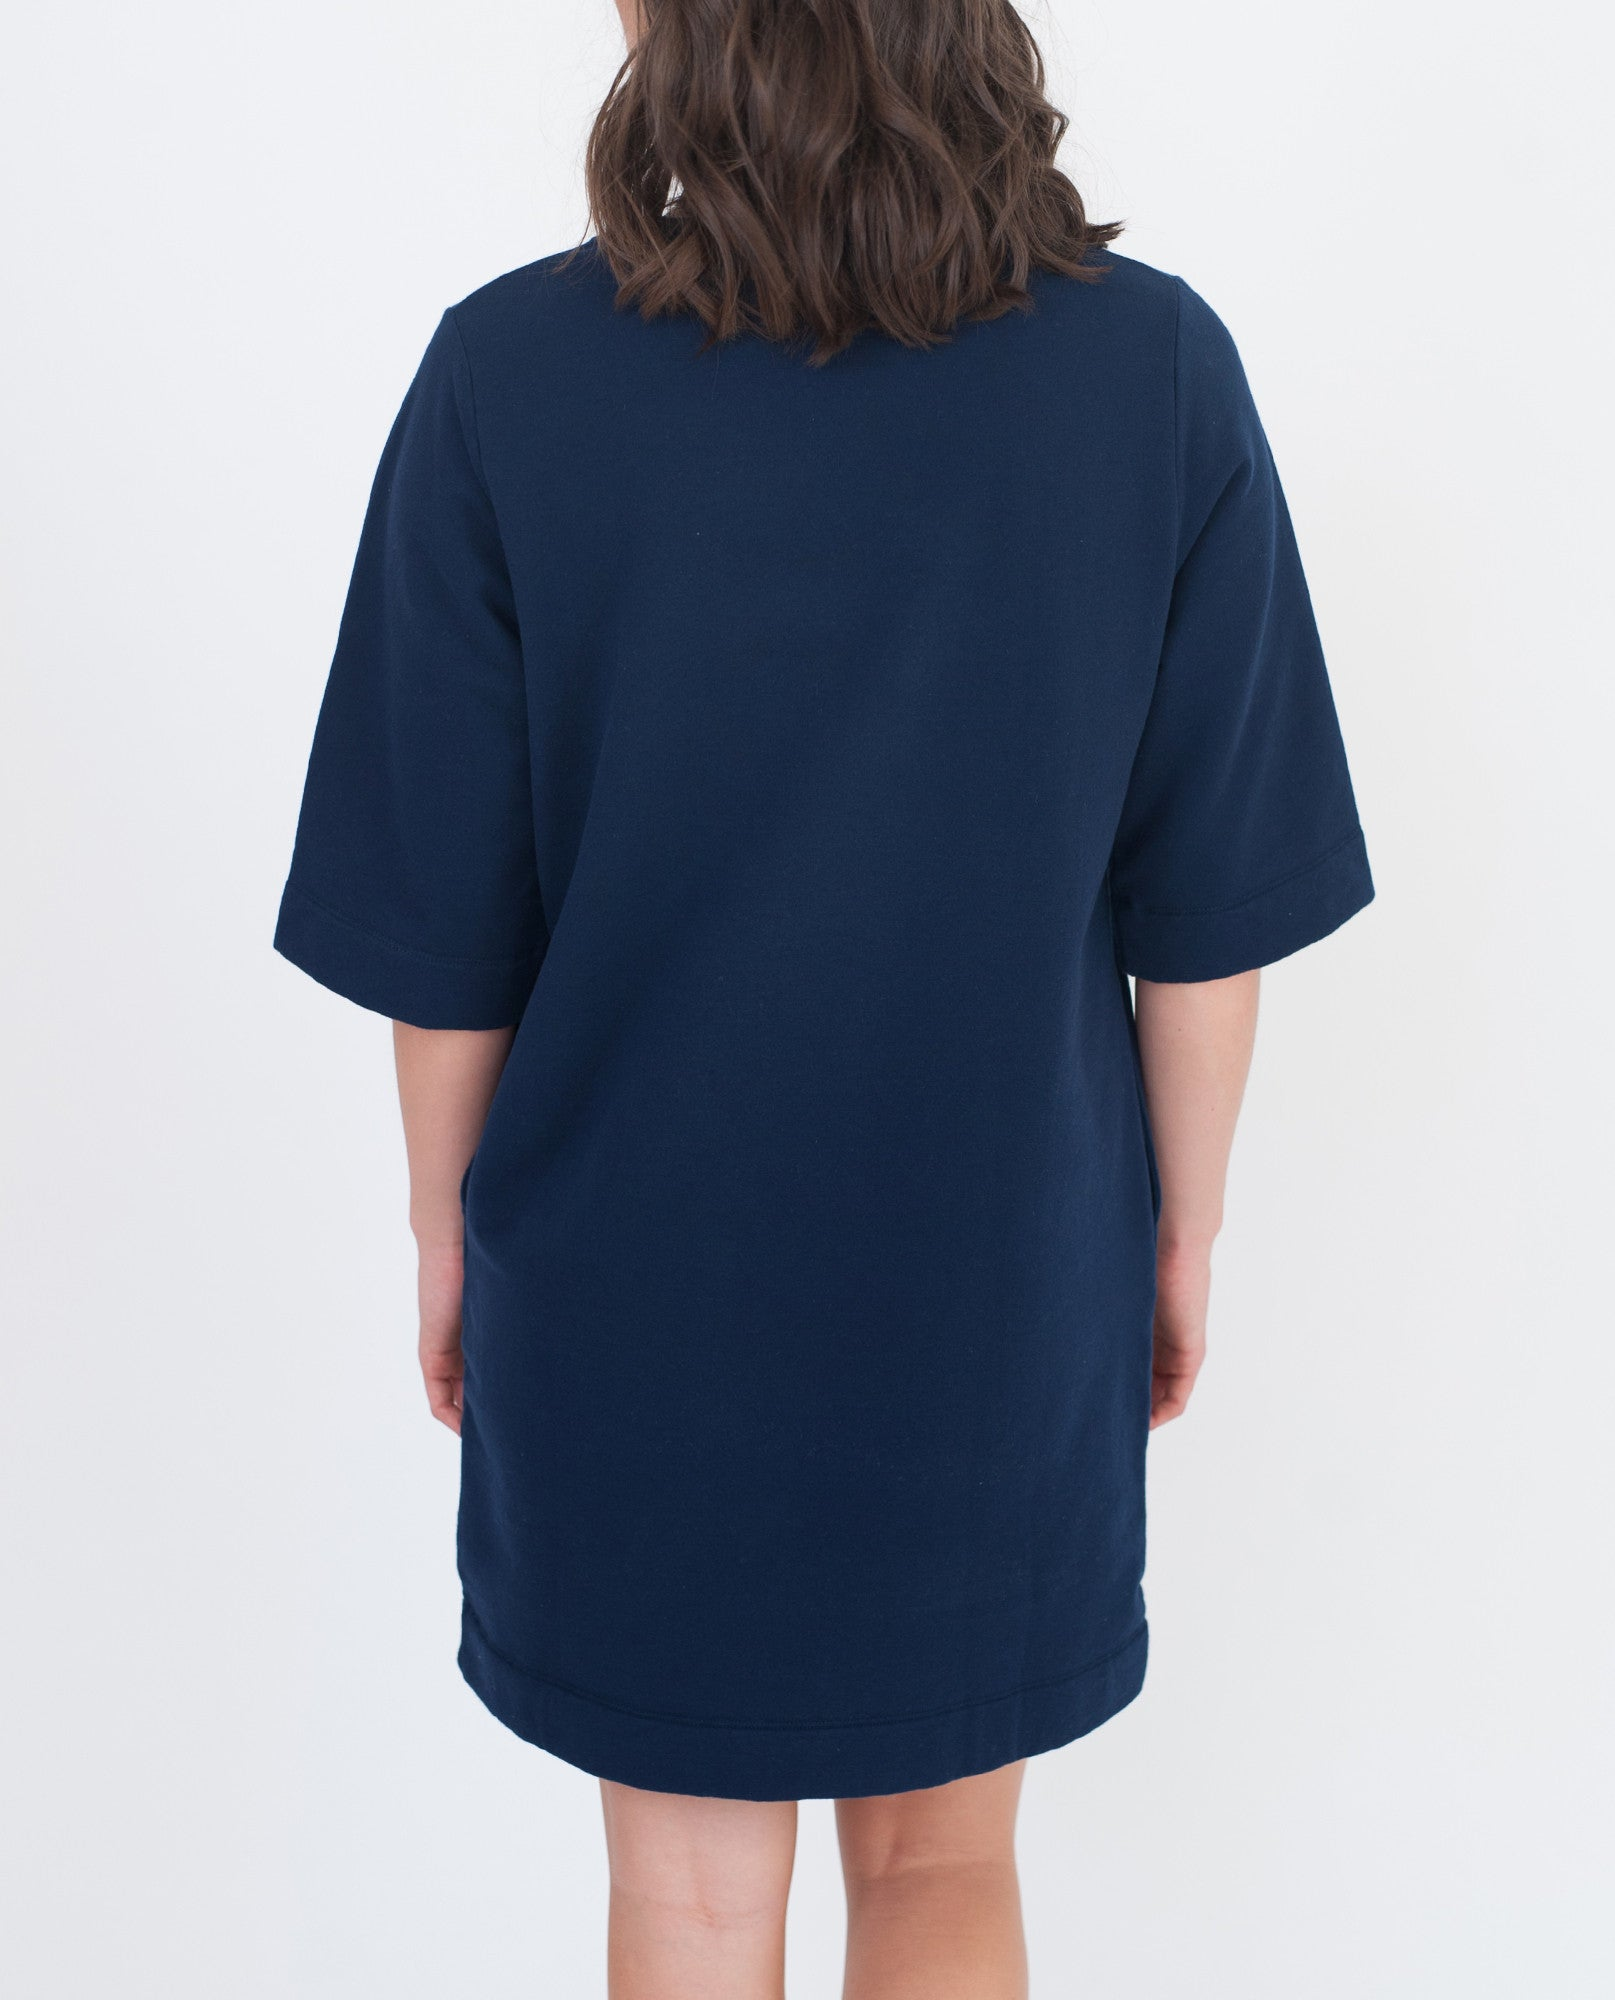 CHLOE Organic Cotton Dress In Navy from Beaumont Organic